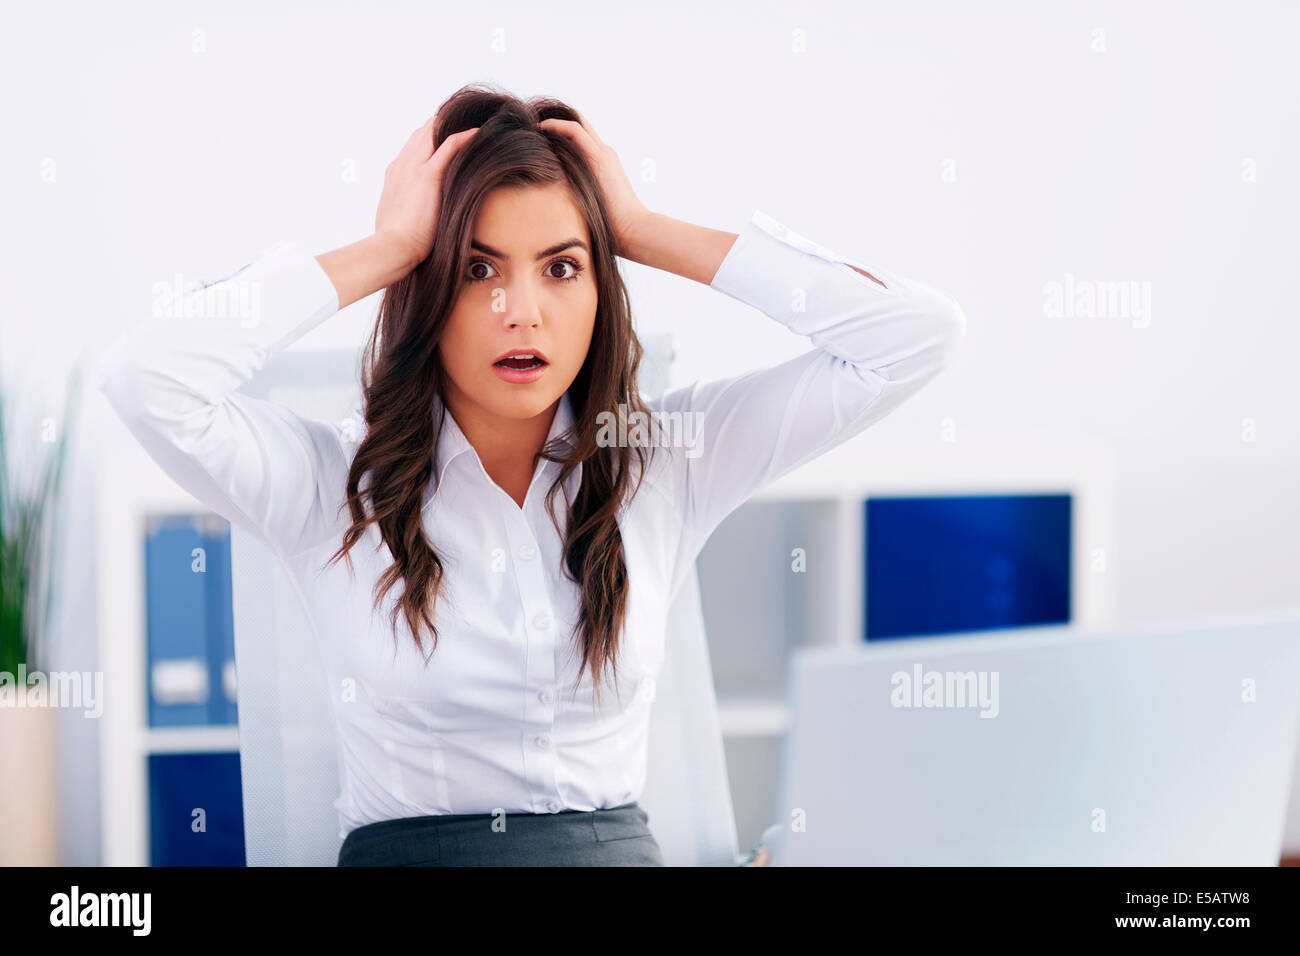 Mistake at work Debica, Poland - Stock Image